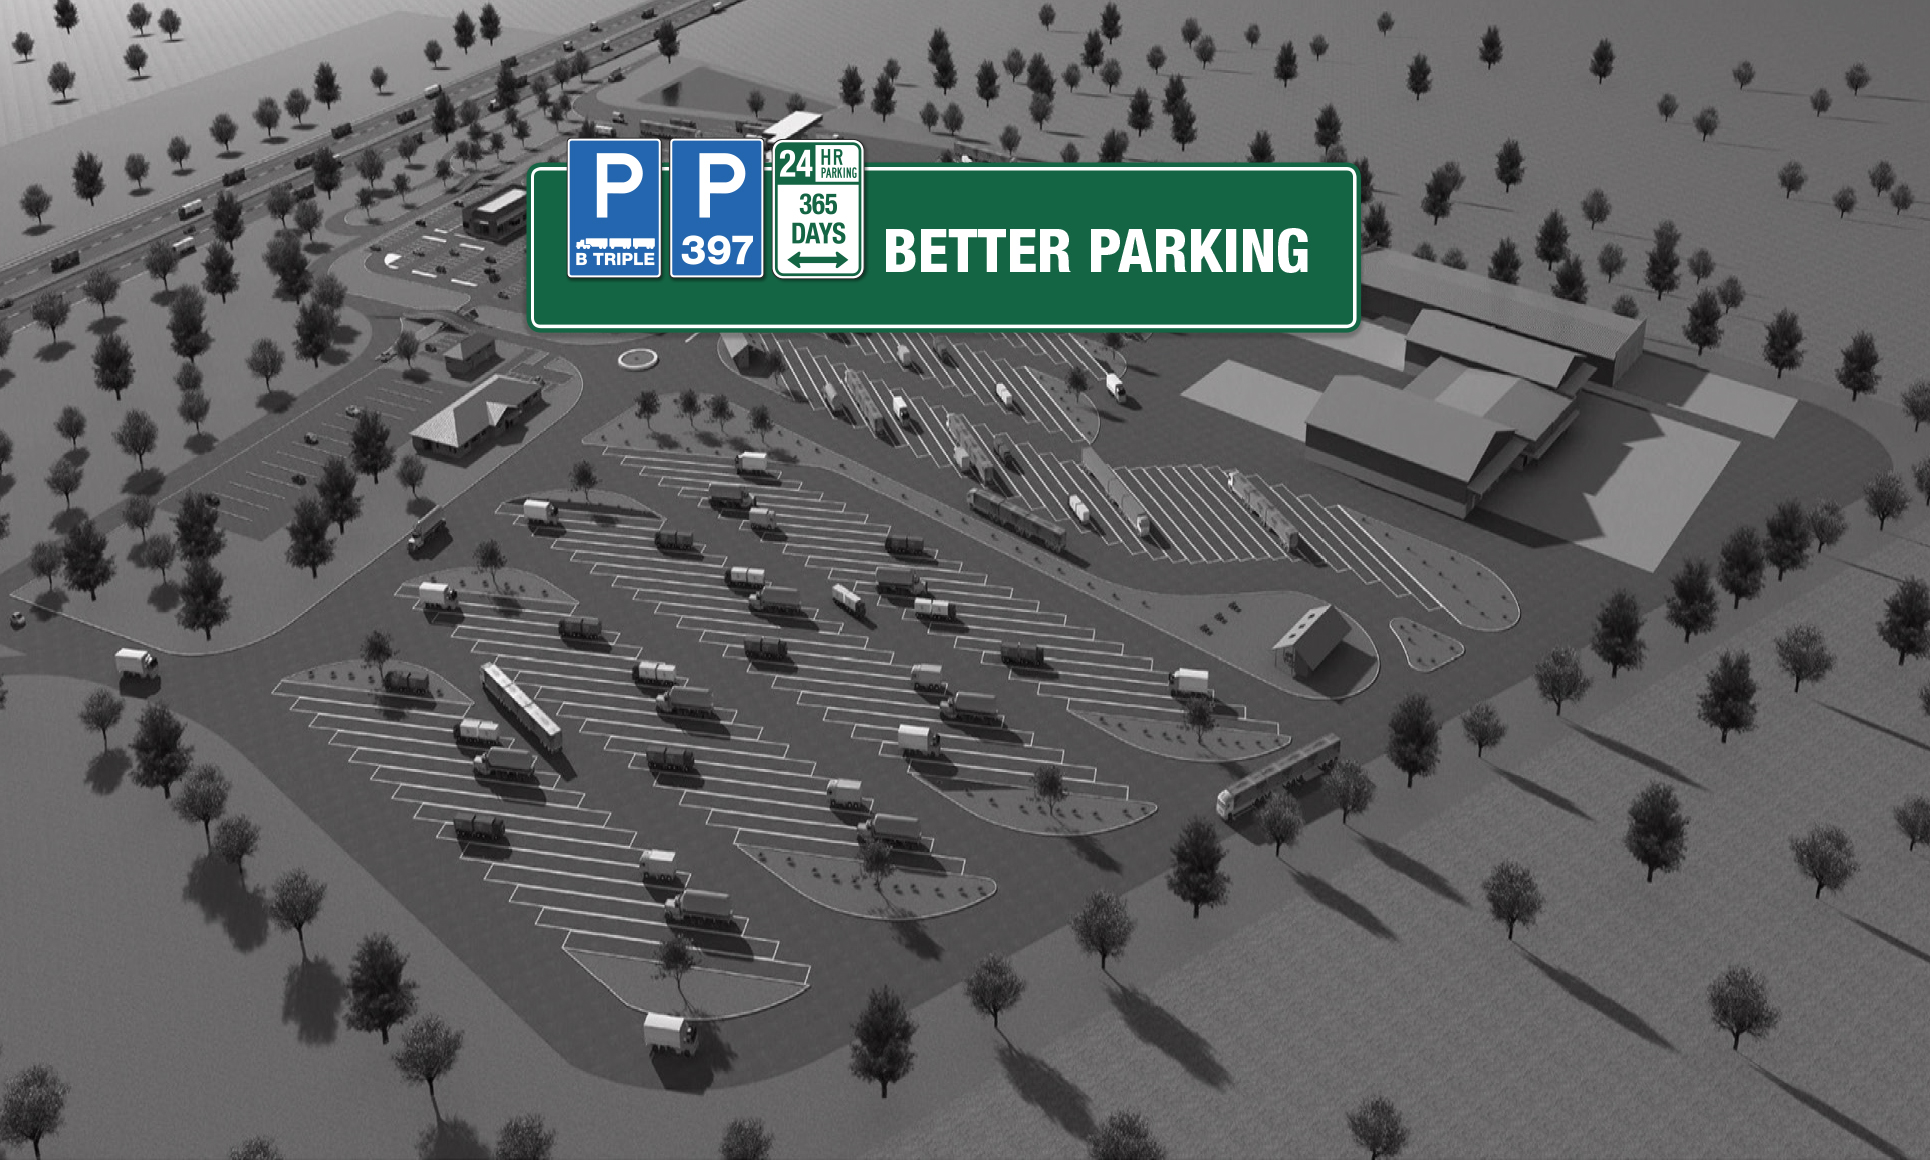 BetterParkingBG-2